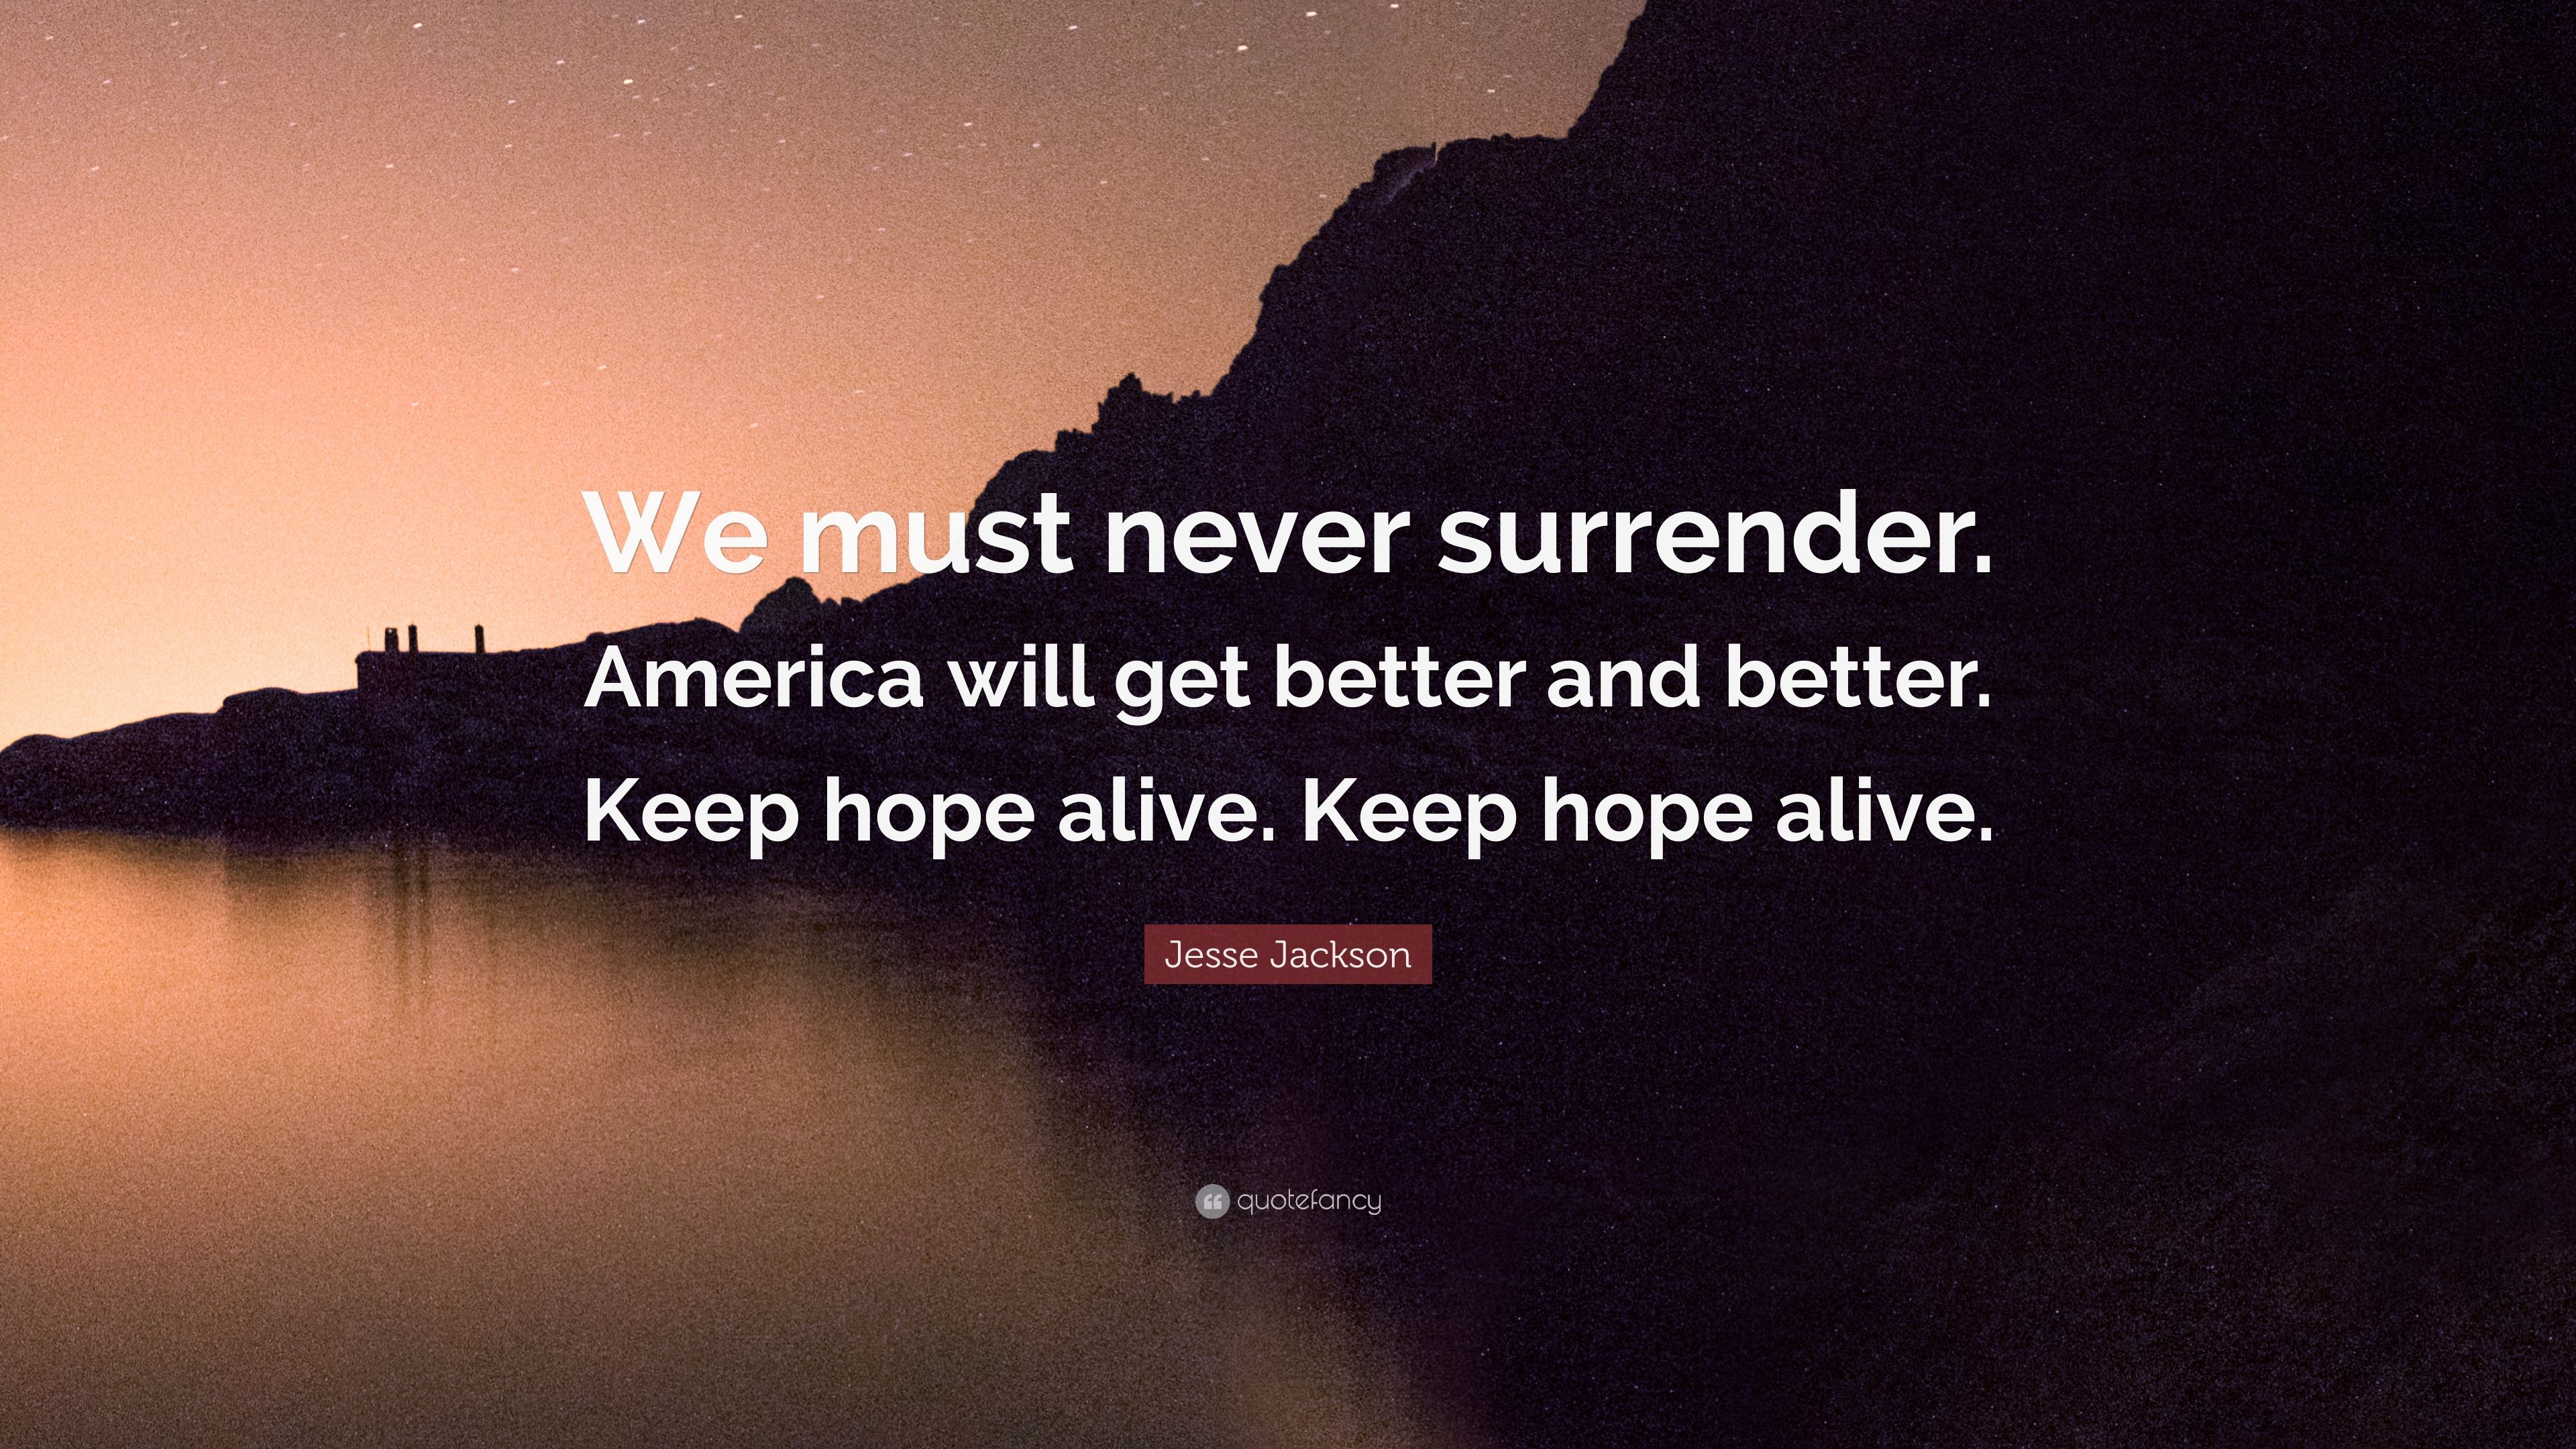 jesse jackson quote we must never surrender america will get better and better